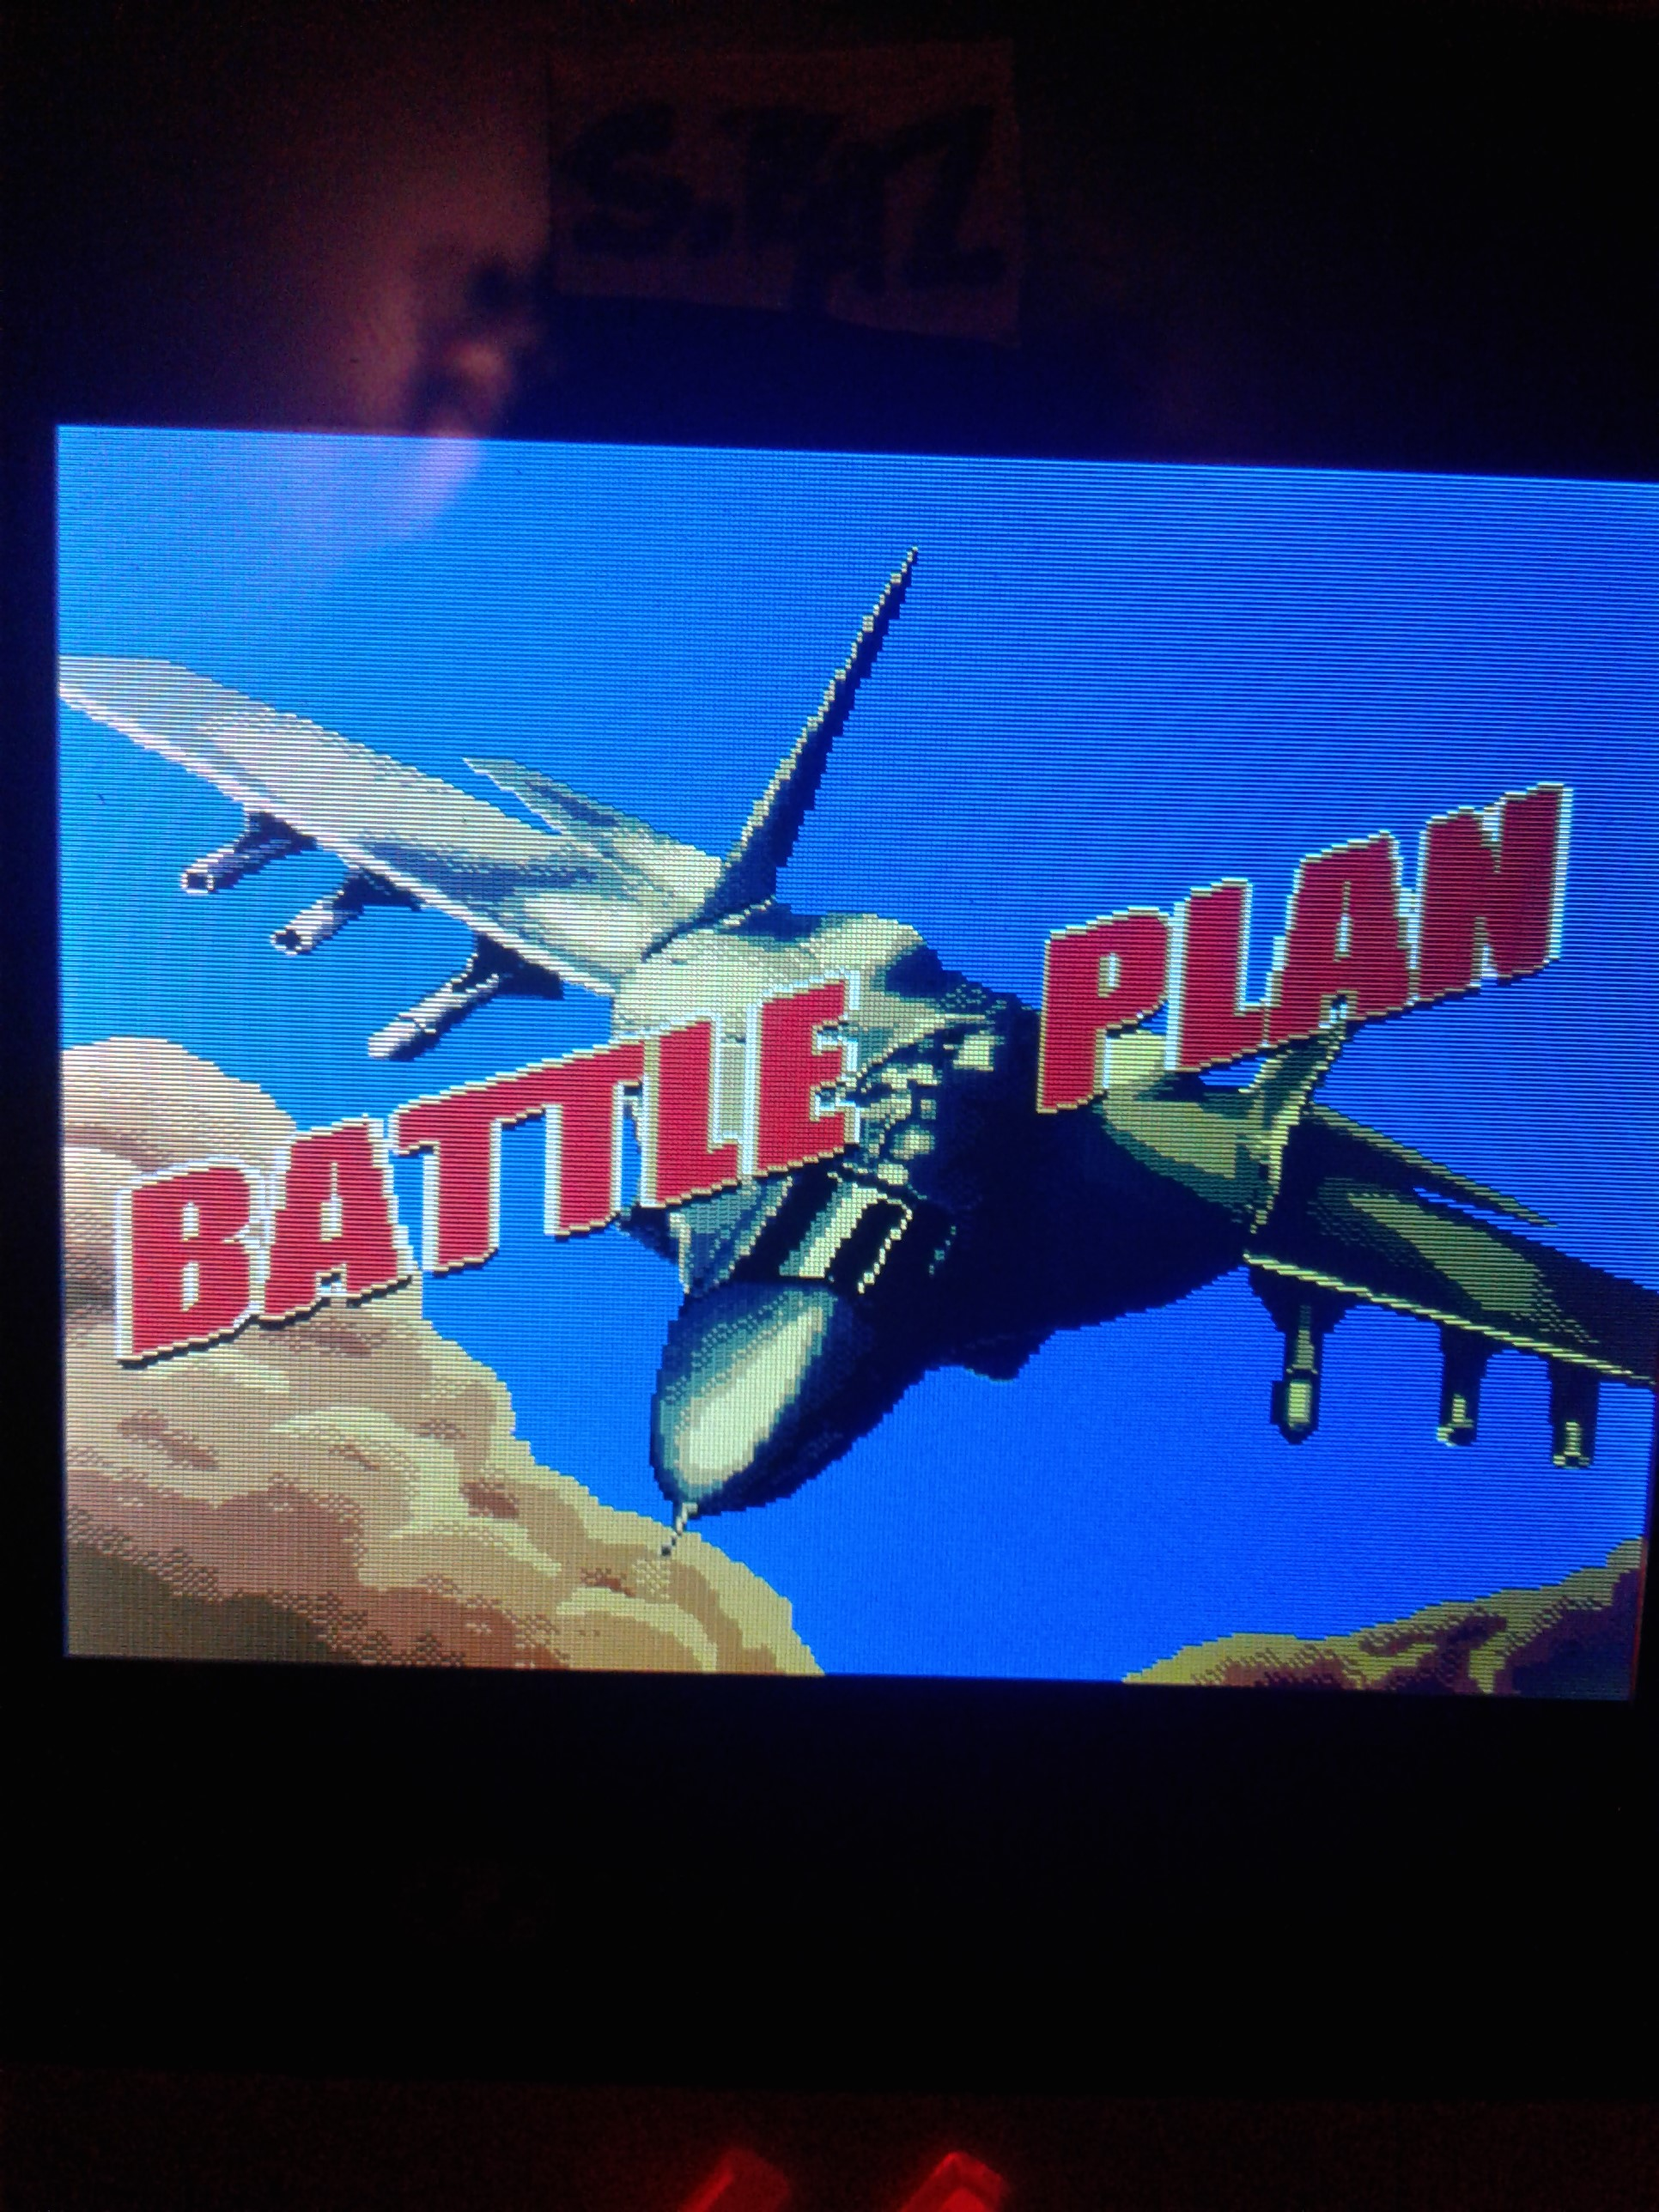 S.BAZ: My Arcade: Battle Plan (Dedicated Handheld) 40,090 points on 2019-11-15 11:44:35